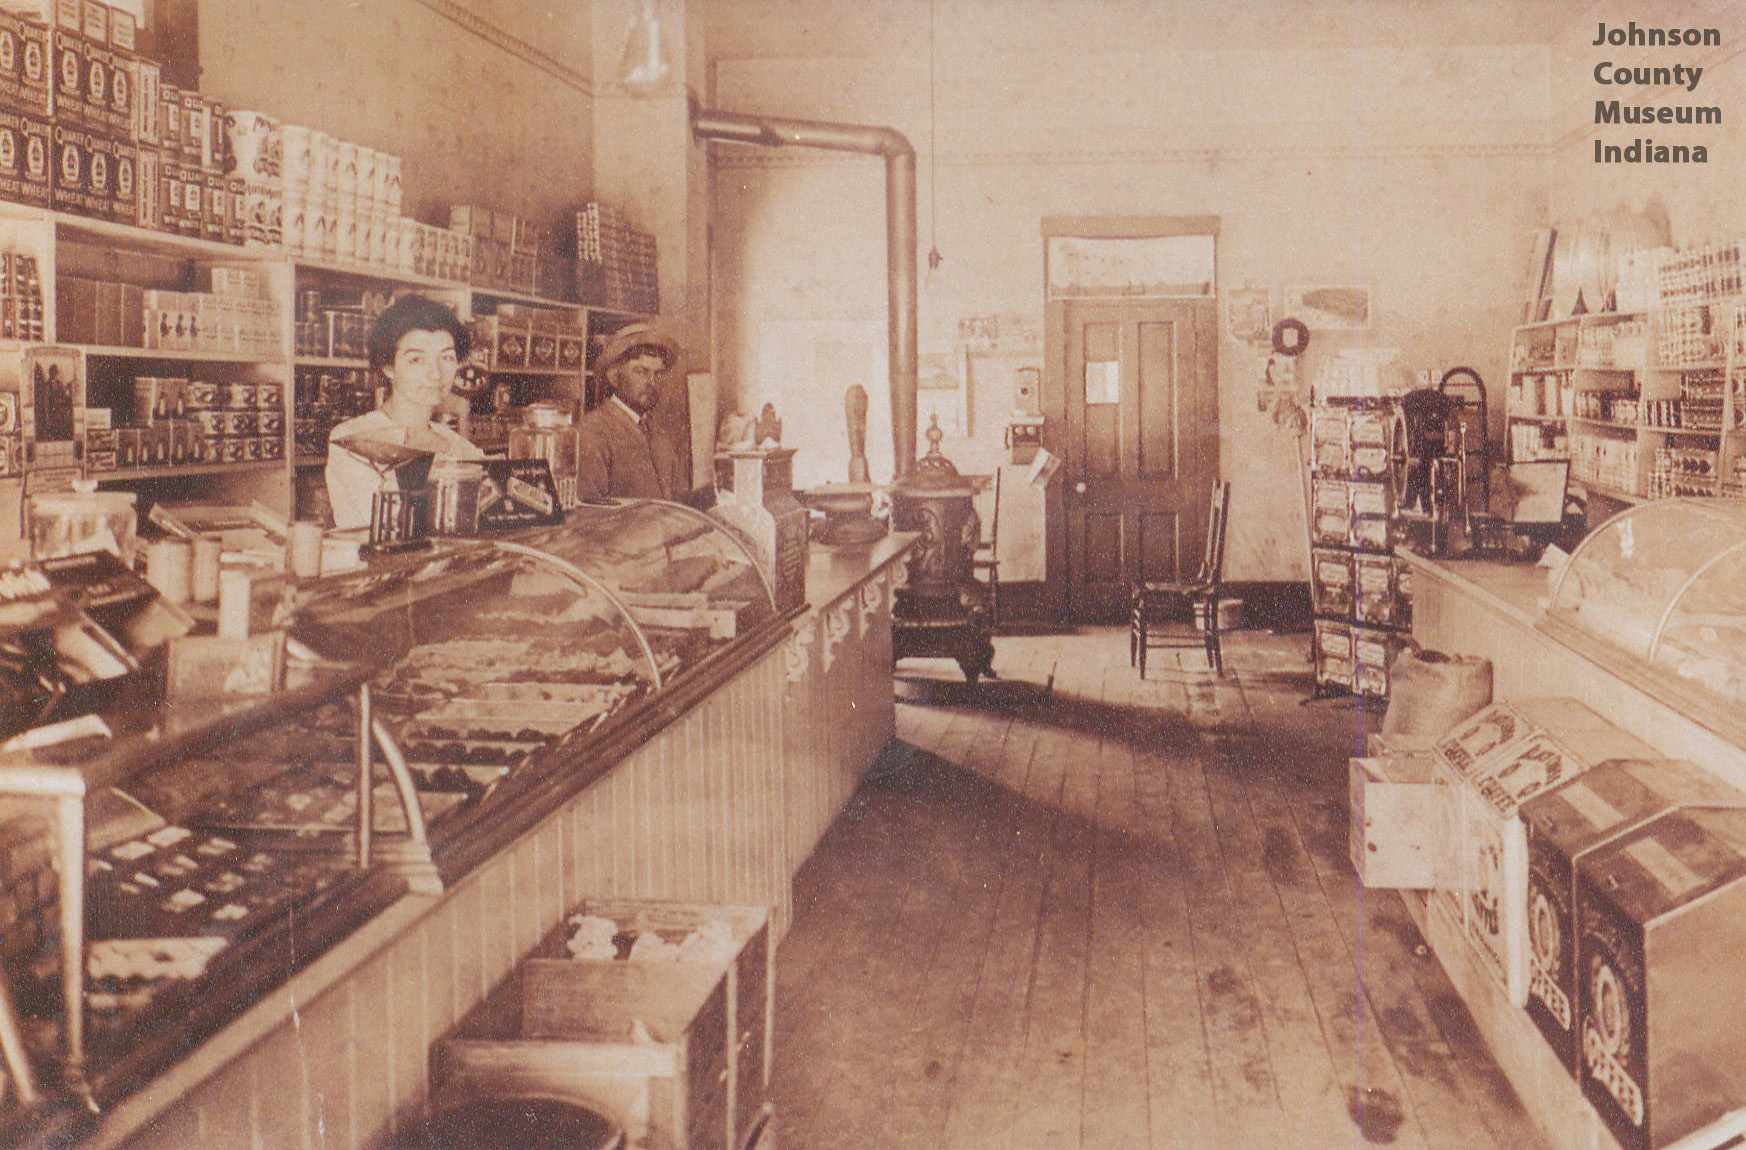 Fred-Holstein-was-the-owner-of-this-grocery-store-at-E-Jefferson-in-Franklin-IN-Altis-and-Dais-wallpaper-wp425563-1